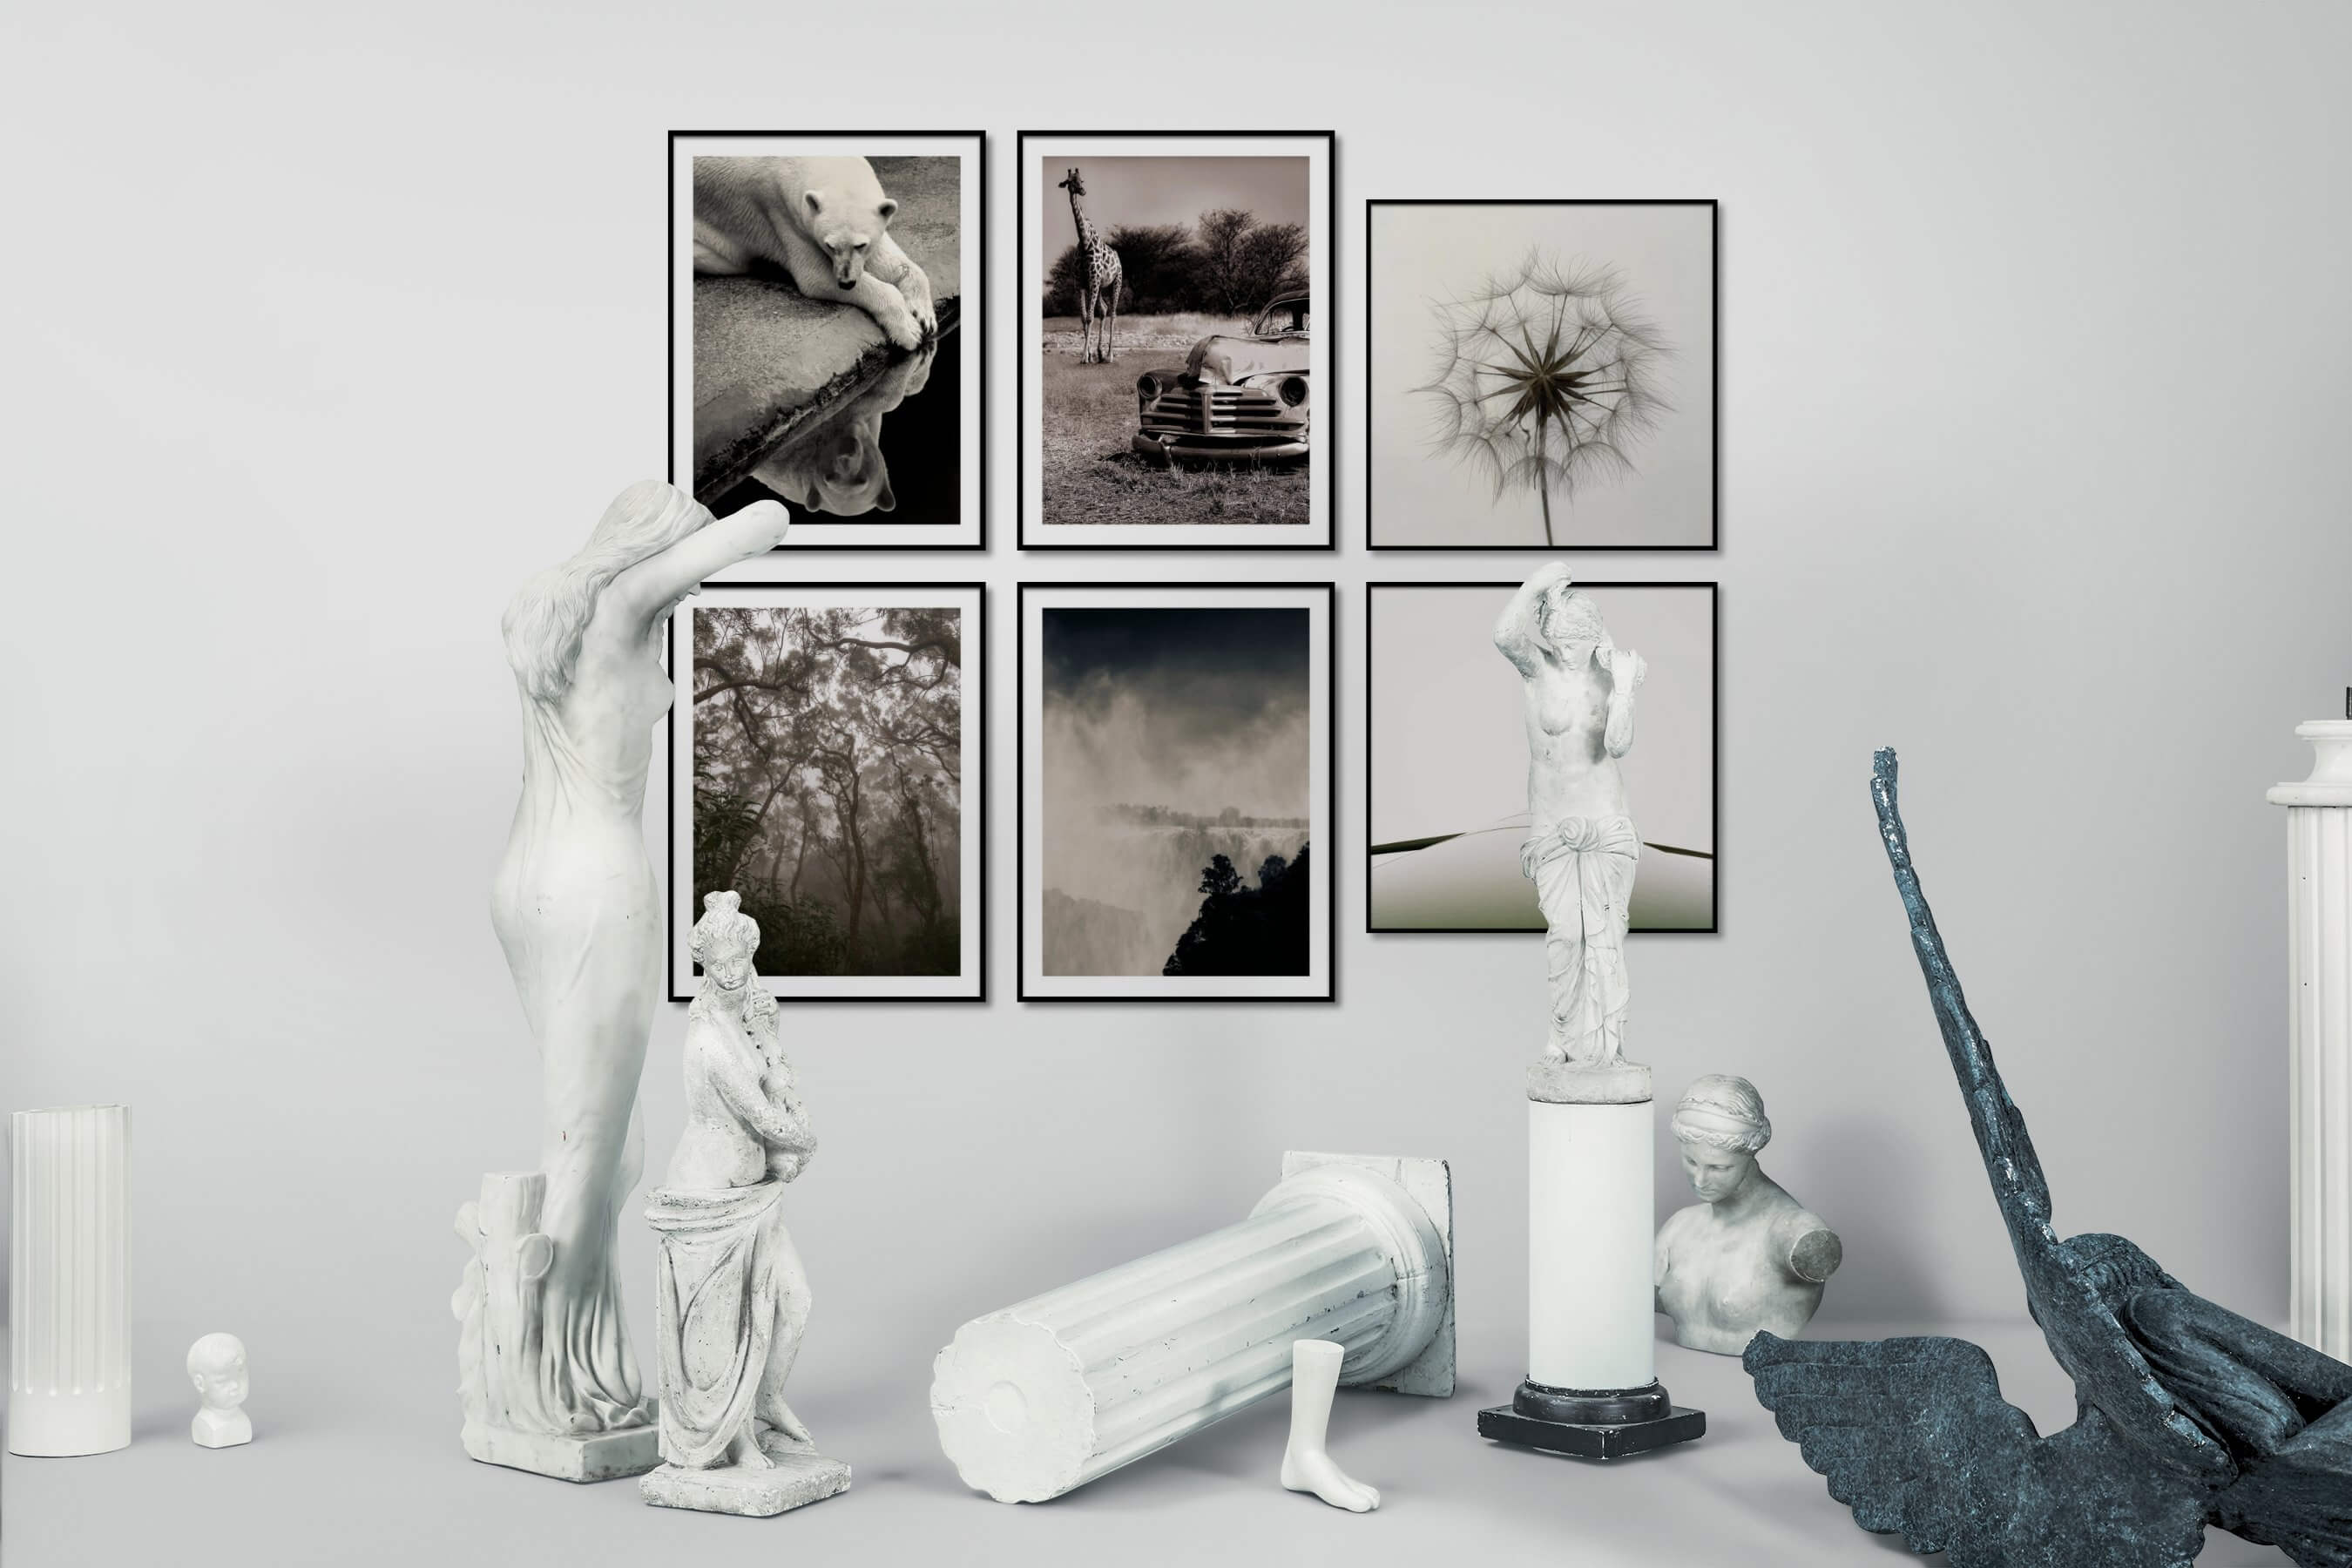 Gallery wall idea with six framed pictures arranged on a wall depicting Black & White, Animals, Vintage, Nature, For the Moderate, Flowers & Plants, and For the Minimalist